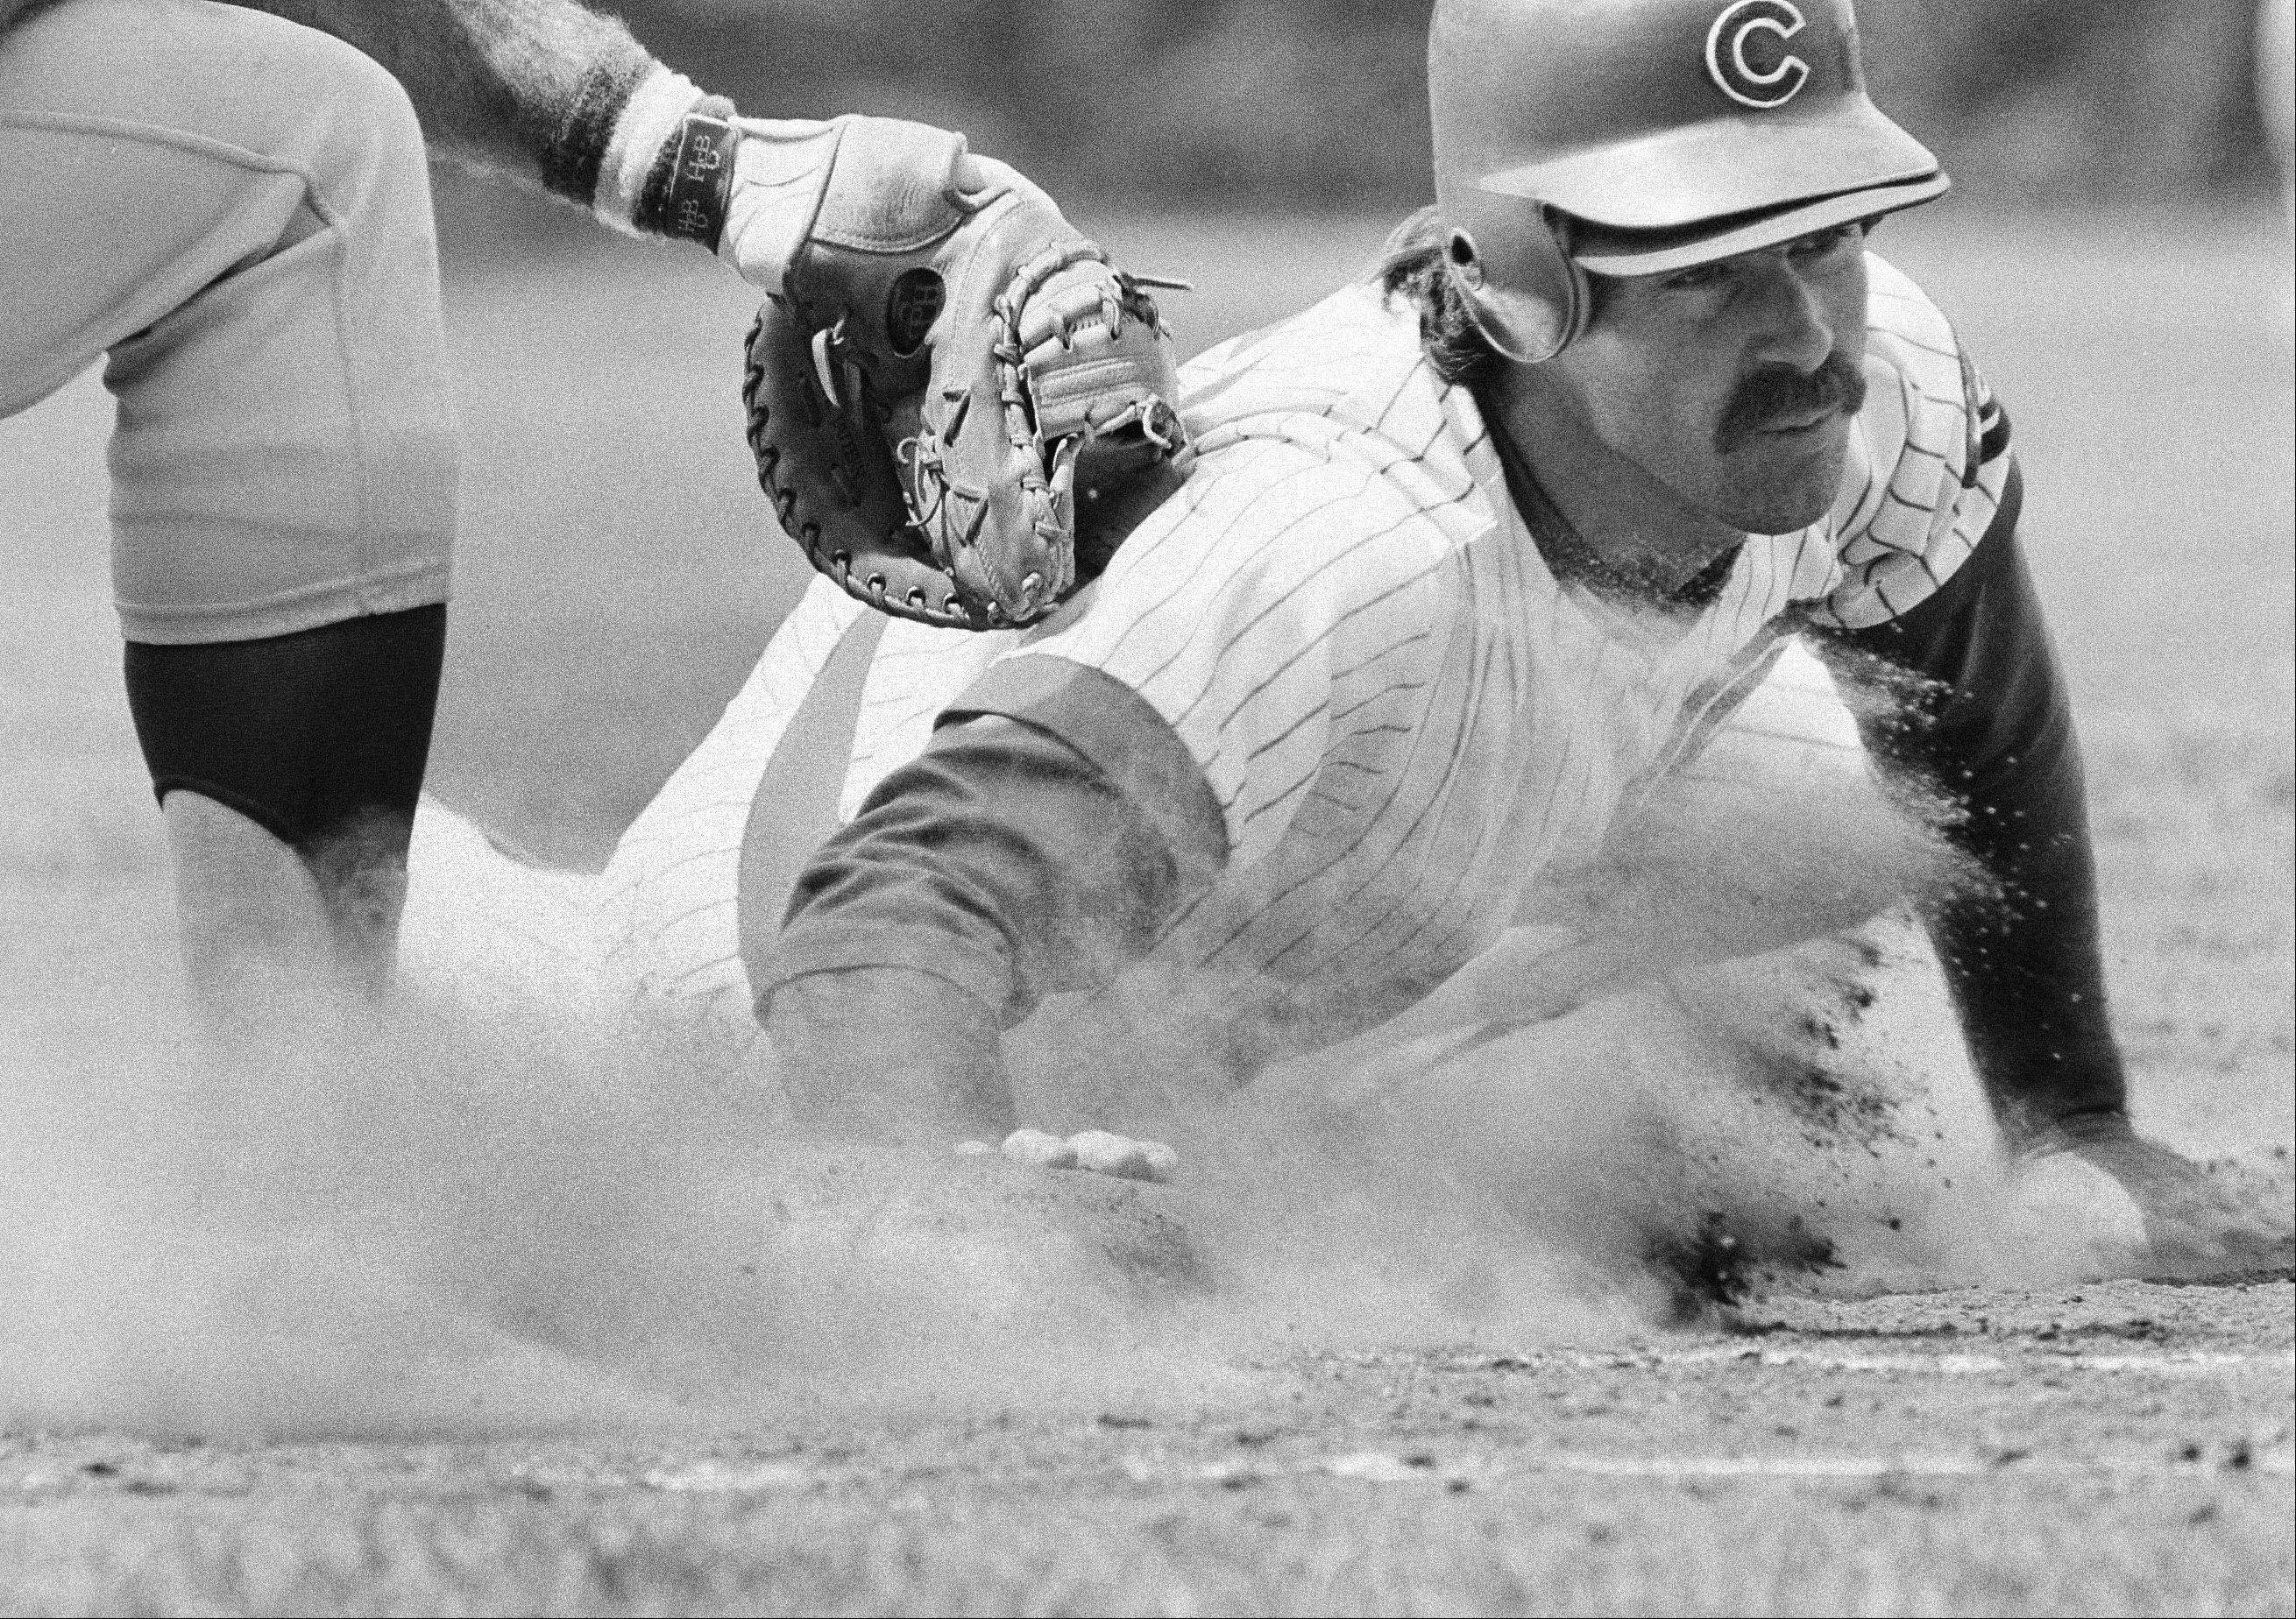 Chicago Cubs Bill Buckner takes some soil samples on his way back to first base in home action against the Los Angeles Dodgers in Chicago, Friday, May 28, 1982.